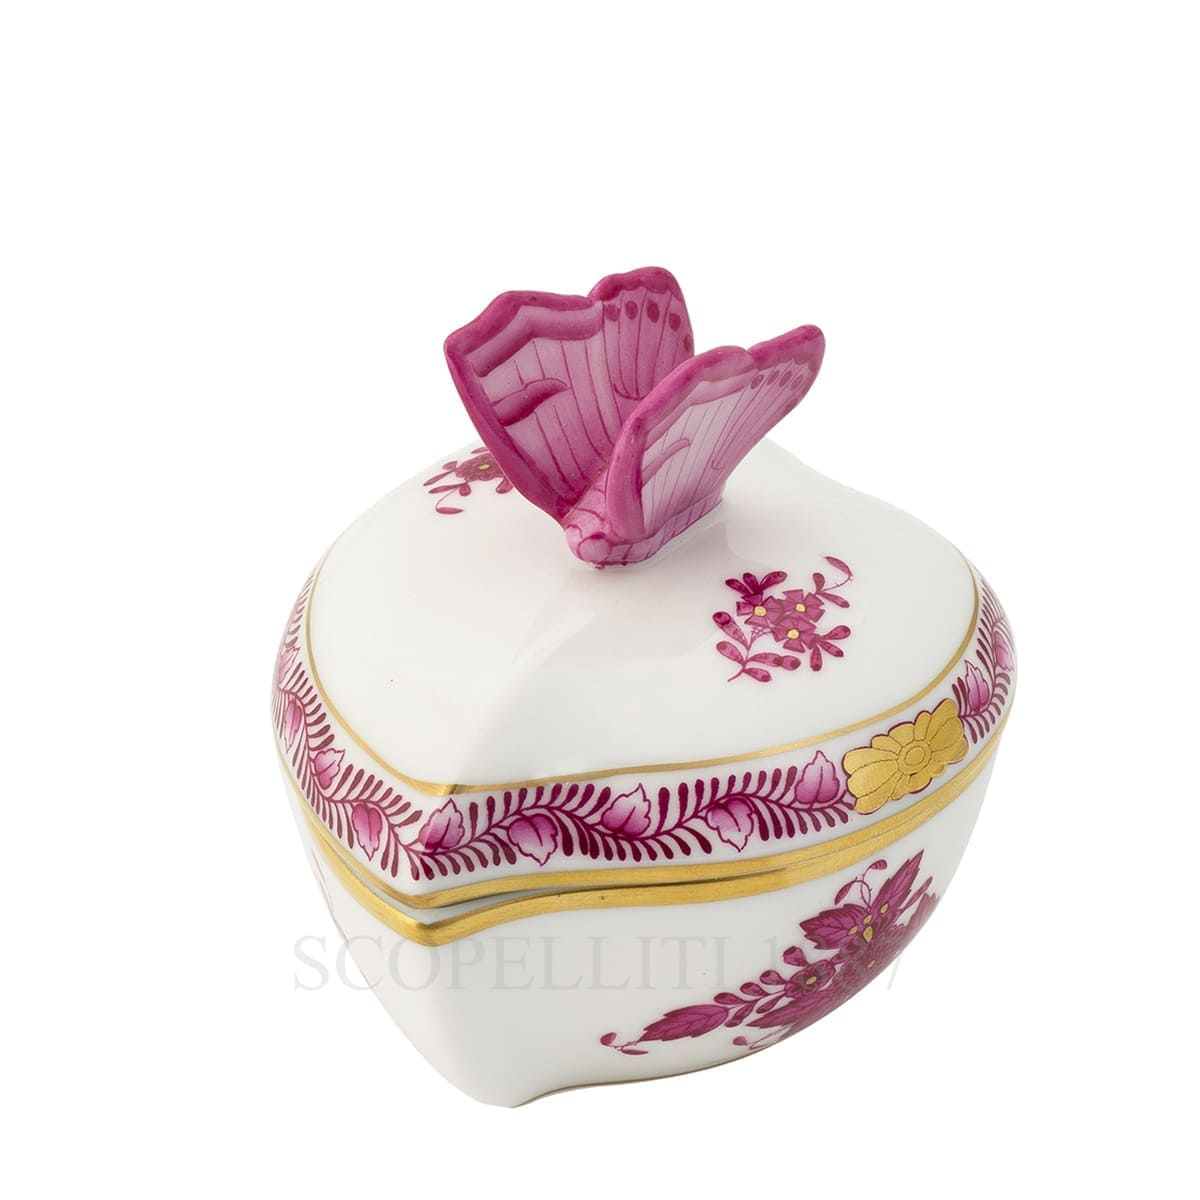 Herend Apponyi Heart Box with Butterfly 6005-17 AP